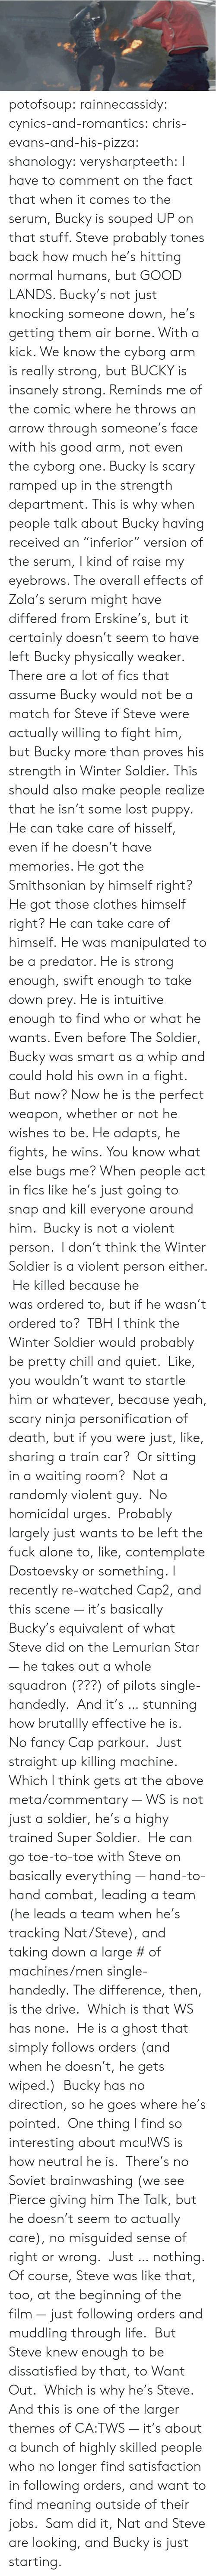 "Waiting Room: potofsoup: rainnecassidy:  cynics-and-romantics:  chris-evans-and-his-pizza:  shanology:  verysharpteeth:  I have to comment on the fact that when it comes to the serum, Bucky is souped UP on that stuff. Steve probably tones back how much he's hitting normal humans, but GOOD LANDS. Bucky's not just knocking someone down, he's getting them air borne. With a kick. We know the cyborg arm is really strong, but BUCKY is insanely strong. Reminds me of the comic where he throws an arrow through someone's face with his good arm, not even the cyborg one. Bucky is scary ramped up in the strength department.  This is why when people talk about Bucky having received an ""inferior"" version of the serum, I kind of raise my eyebrows. The overall effects of Zola's serum might have differed from Erskine's, but it certainly doesn't seem to have left Bucky physically weaker. There are a lot of fics that assume Bucky would not be a match for Steve if Steve were actually willing to fight him, but Bucky more than proves his strength in Winter Soldier.  This should also make people realize that he isn't some lost puppy. He can take care of hisself, even if he doesn't have memories. He got the Smithsonian by himself right? He got those clothes himself right? He can take care of himself.  He was manipulated to be a predator. He is strong enough, swift enough to take down prey. He is intuitive enough to find who or what he wants. Even before The Soldier, Bucky was smart as a whip and could hold his own in a fight. But now? Now he is the perfect weapon, whether or not he wishes to be. He adapts, he fights, he wins.  You know what else bugs me? When people act in fics like he's just going to snap and kill everyone around him.  Bucky is not a violent person.  I don't think the Winter Soldier is a violent person either.  He killed because he was ordered to, but if he wasn't ordered to?  TBH I think the Winter Soldier would probably be pretty chill and quiet.  Like, you wouldn't want to startle him or whatever, because yeah, scary ninja personification of death, but if you were just, like, sharing a train car?  Or sitting in a waiting room?  Not a randomly violent guy.  No homicidal urges.  Probably largely just wants to be left the fuck alone to, like, contemplate Dostoevsky or something.  I recently re-watched Cap2, and this scene — it's basically Bucky's equivalent of what Steve did on the Lemurian Star — he takes out a whole squadron (???) of pilots single-handedly.  And it's … stunning how brutallly effective he is.  No fancy Cap parkour.  Just straight up killing machine. Which I think gets at the above meta/commentary — WS is not just a soldier, he's a highy trained Super Soldier.  He can go toe-to-toe with Steve on basically everything — hand-to-hand combat, leading a team (he leads a team when he's tracking Nat/Steve), and taking down a large # of machines/men single-handedly. The difference, then, is the drive.  Which is that WS has none.  He is a ghost that simply follows orders (and when he doesn't, he gets wiped.)  Bucky has no direction, so he goes where he's pointed.  One thing I find so interesting about mcu!WS is how neutral he is.  There's no Soviet brainwashing (we see Pierce giving him The Talk, but he doesn't seem to actually care), no misguided sense of right or wrong.  Just … nothing. Of course, Steve was like that, too, at the beginning of the film — just following orders and muddling through life.  But Steve knew enough to be dissatisfied by that, to Want Out.  Which is why he's Steve. And this is one of the larger themes of CA:TWS — it's about a bunch of highly skilled people who no longer find satisfaction in following orders, and want to find meaning outside of their jobs.  Sam did it, Nat and Steve are looking, and Bucky is just starting."